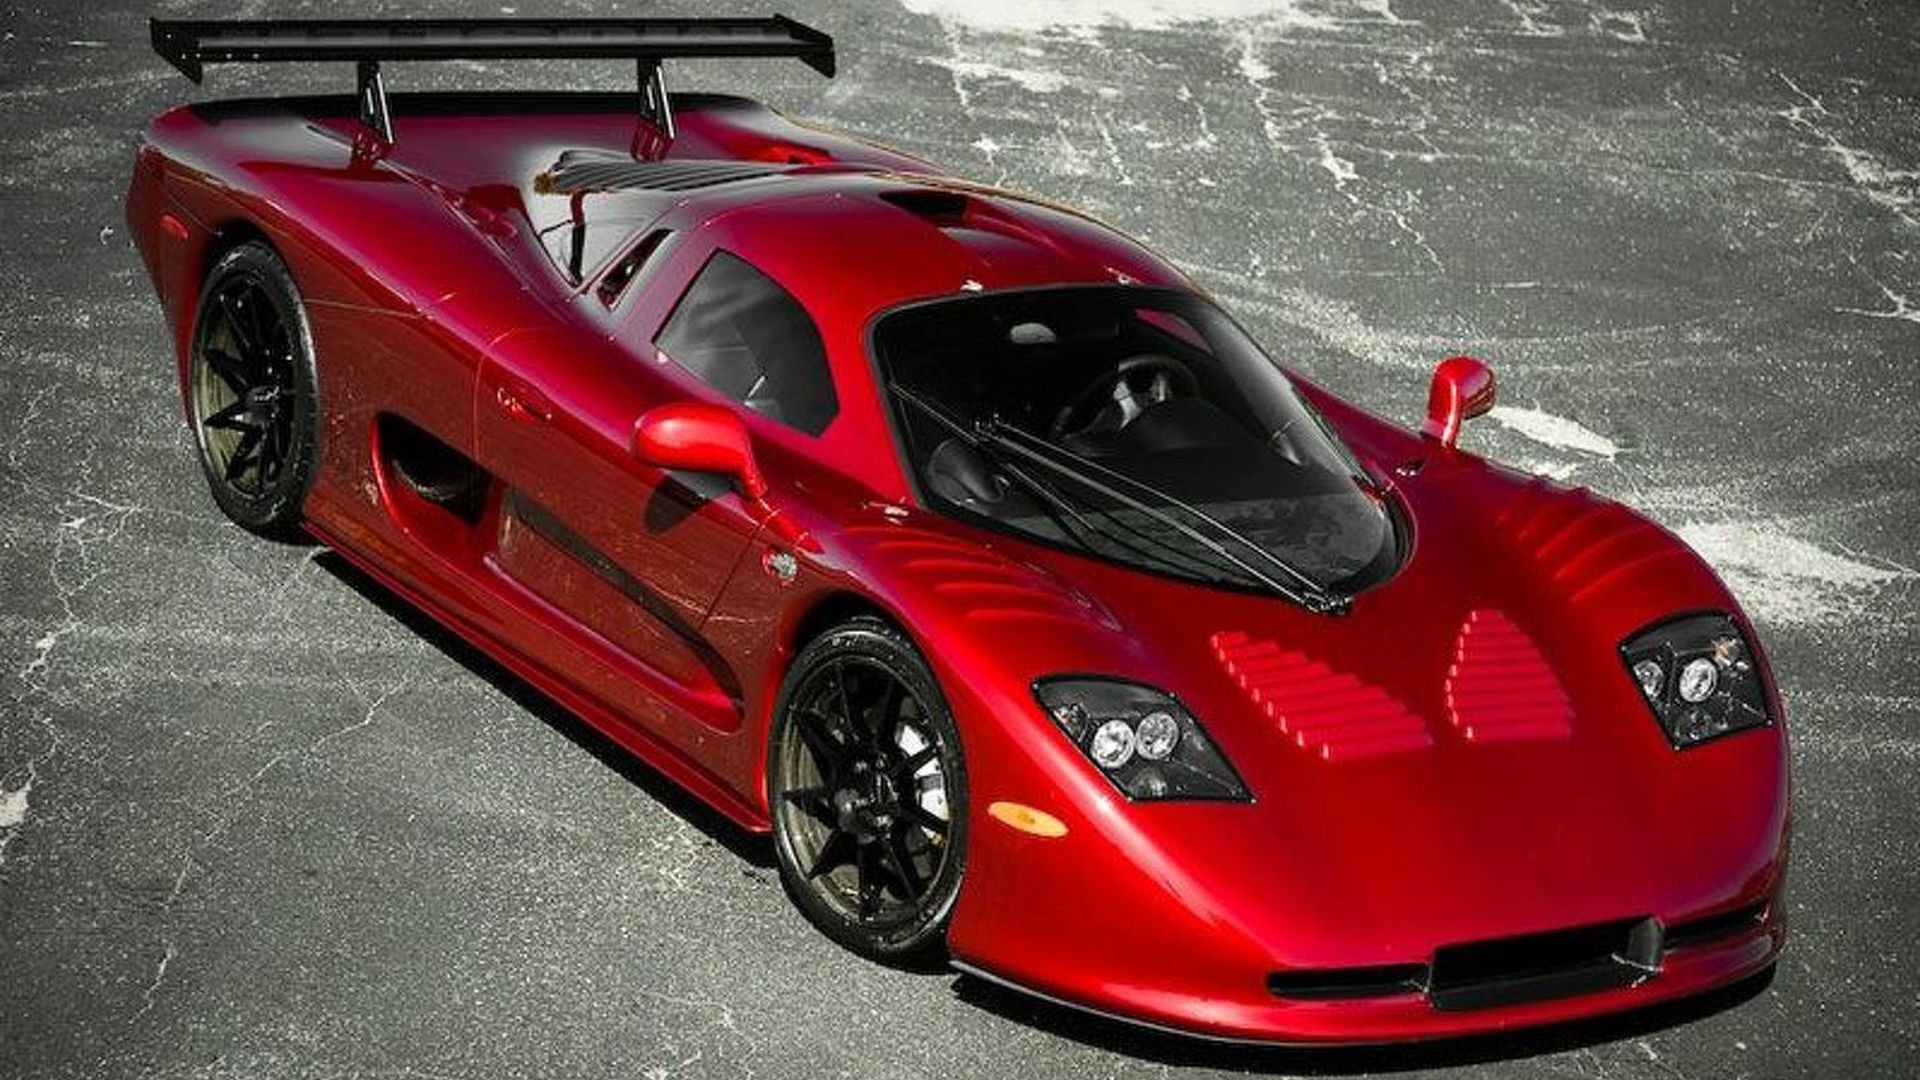 mosler mt900 gtr xx sales begin. Black Bedroom Furniture Sets. Home Design Ideas